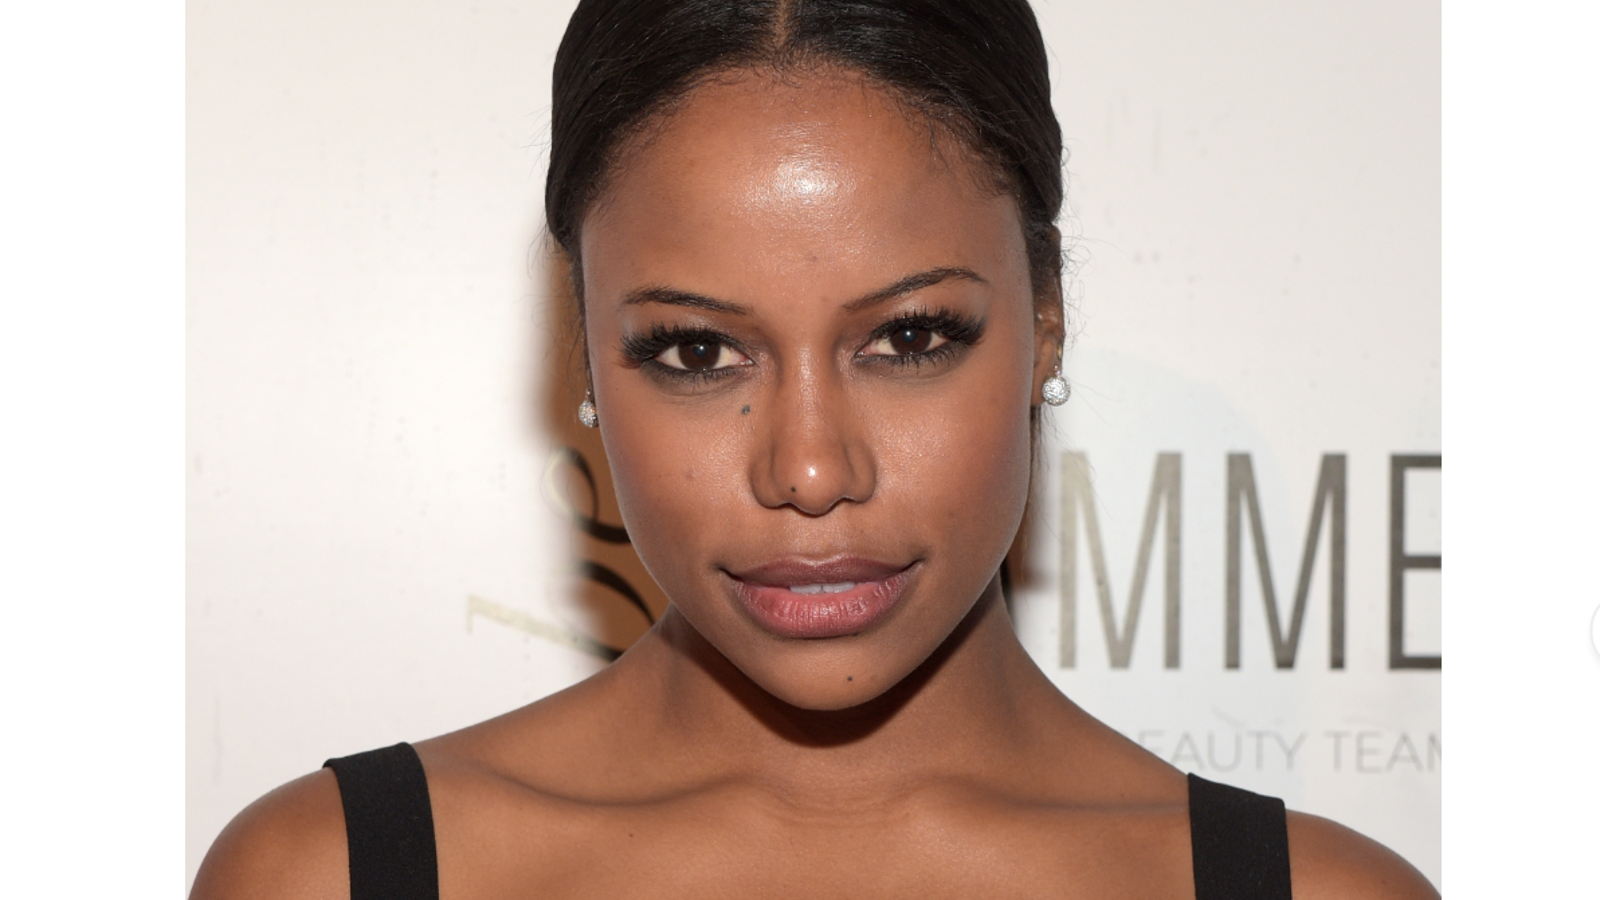 Taylour Paige nudes (62 foto and video), Sexy, Hot, Instagram, lingerie 2020